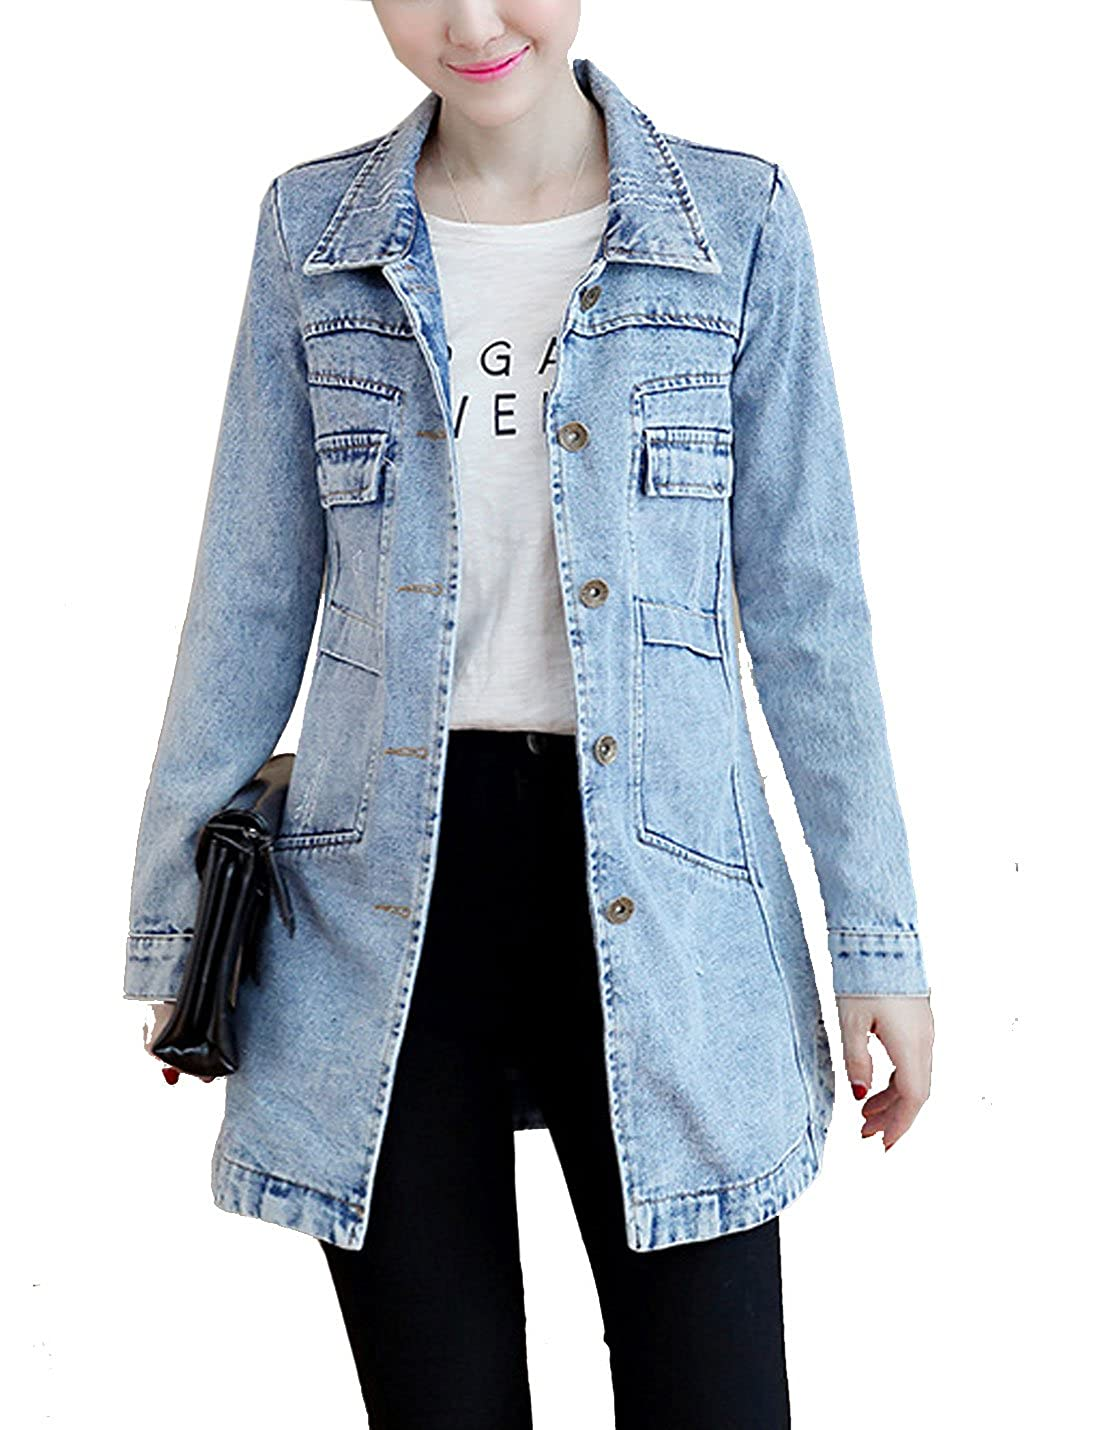 Yeokou Women's Casual Slim Fit Mid Long Button Down Jean Deanim Jacket Coat Tops